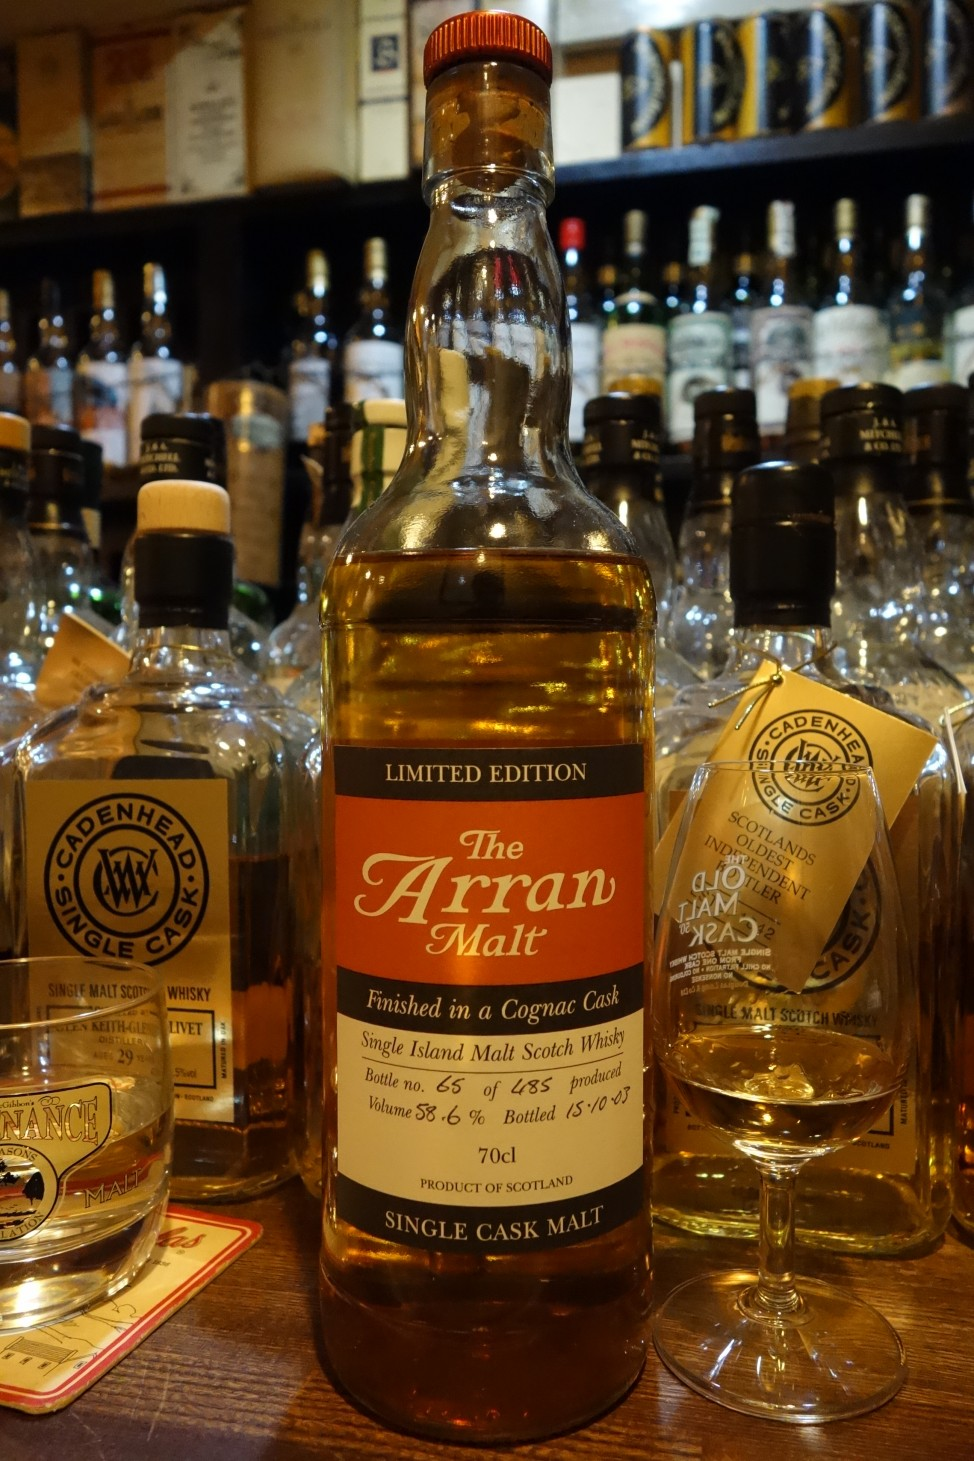 ISLE OF ARRAN OB SINGLE CASK Finished in a Cognac Cask